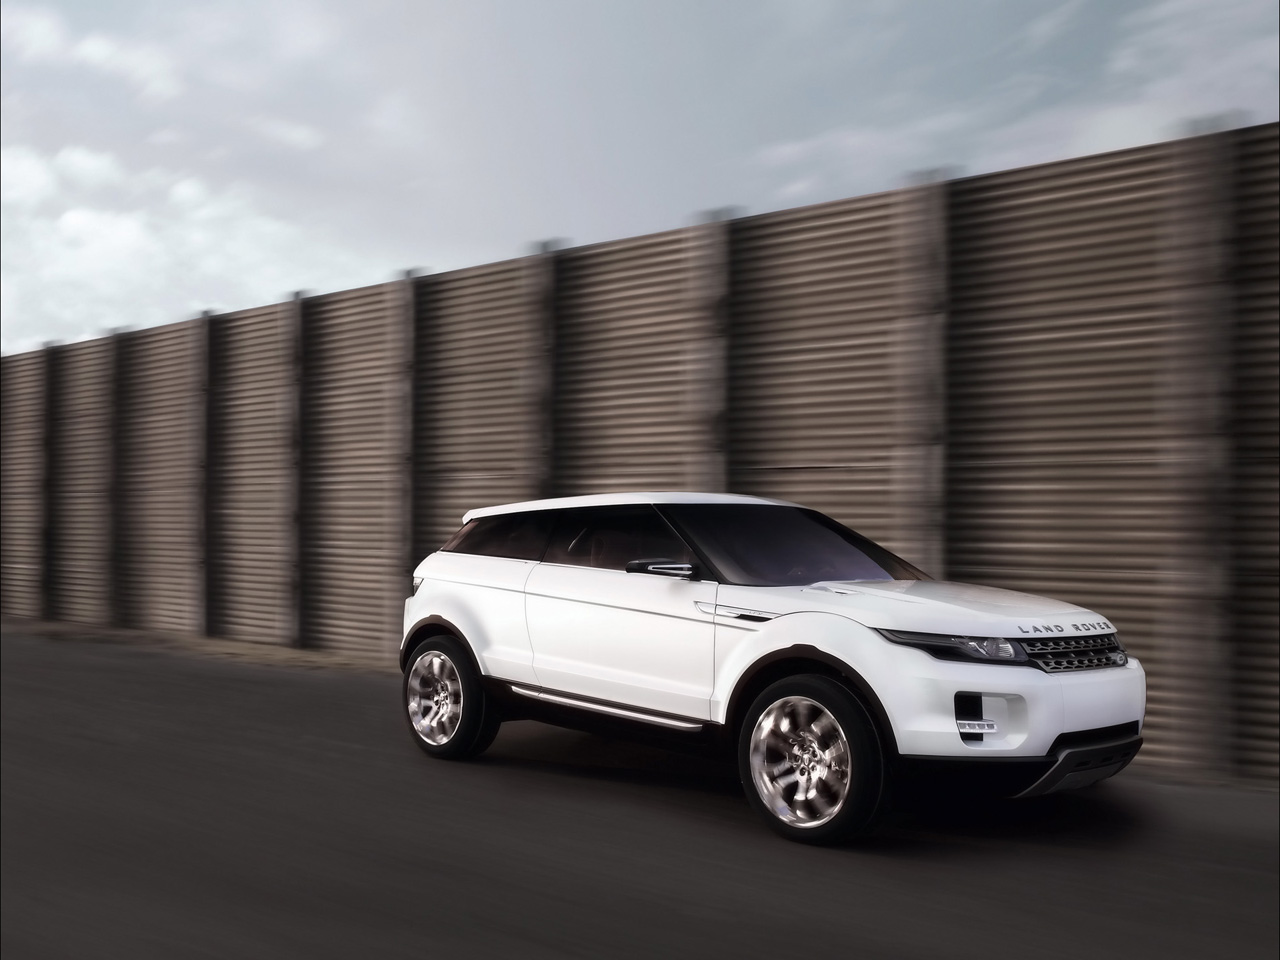 https://s1.cdn.autoevolution.com/images/news/uk-gives-money-to-land-rover-to-build-lrx-compact-suv-4920_1.jpg